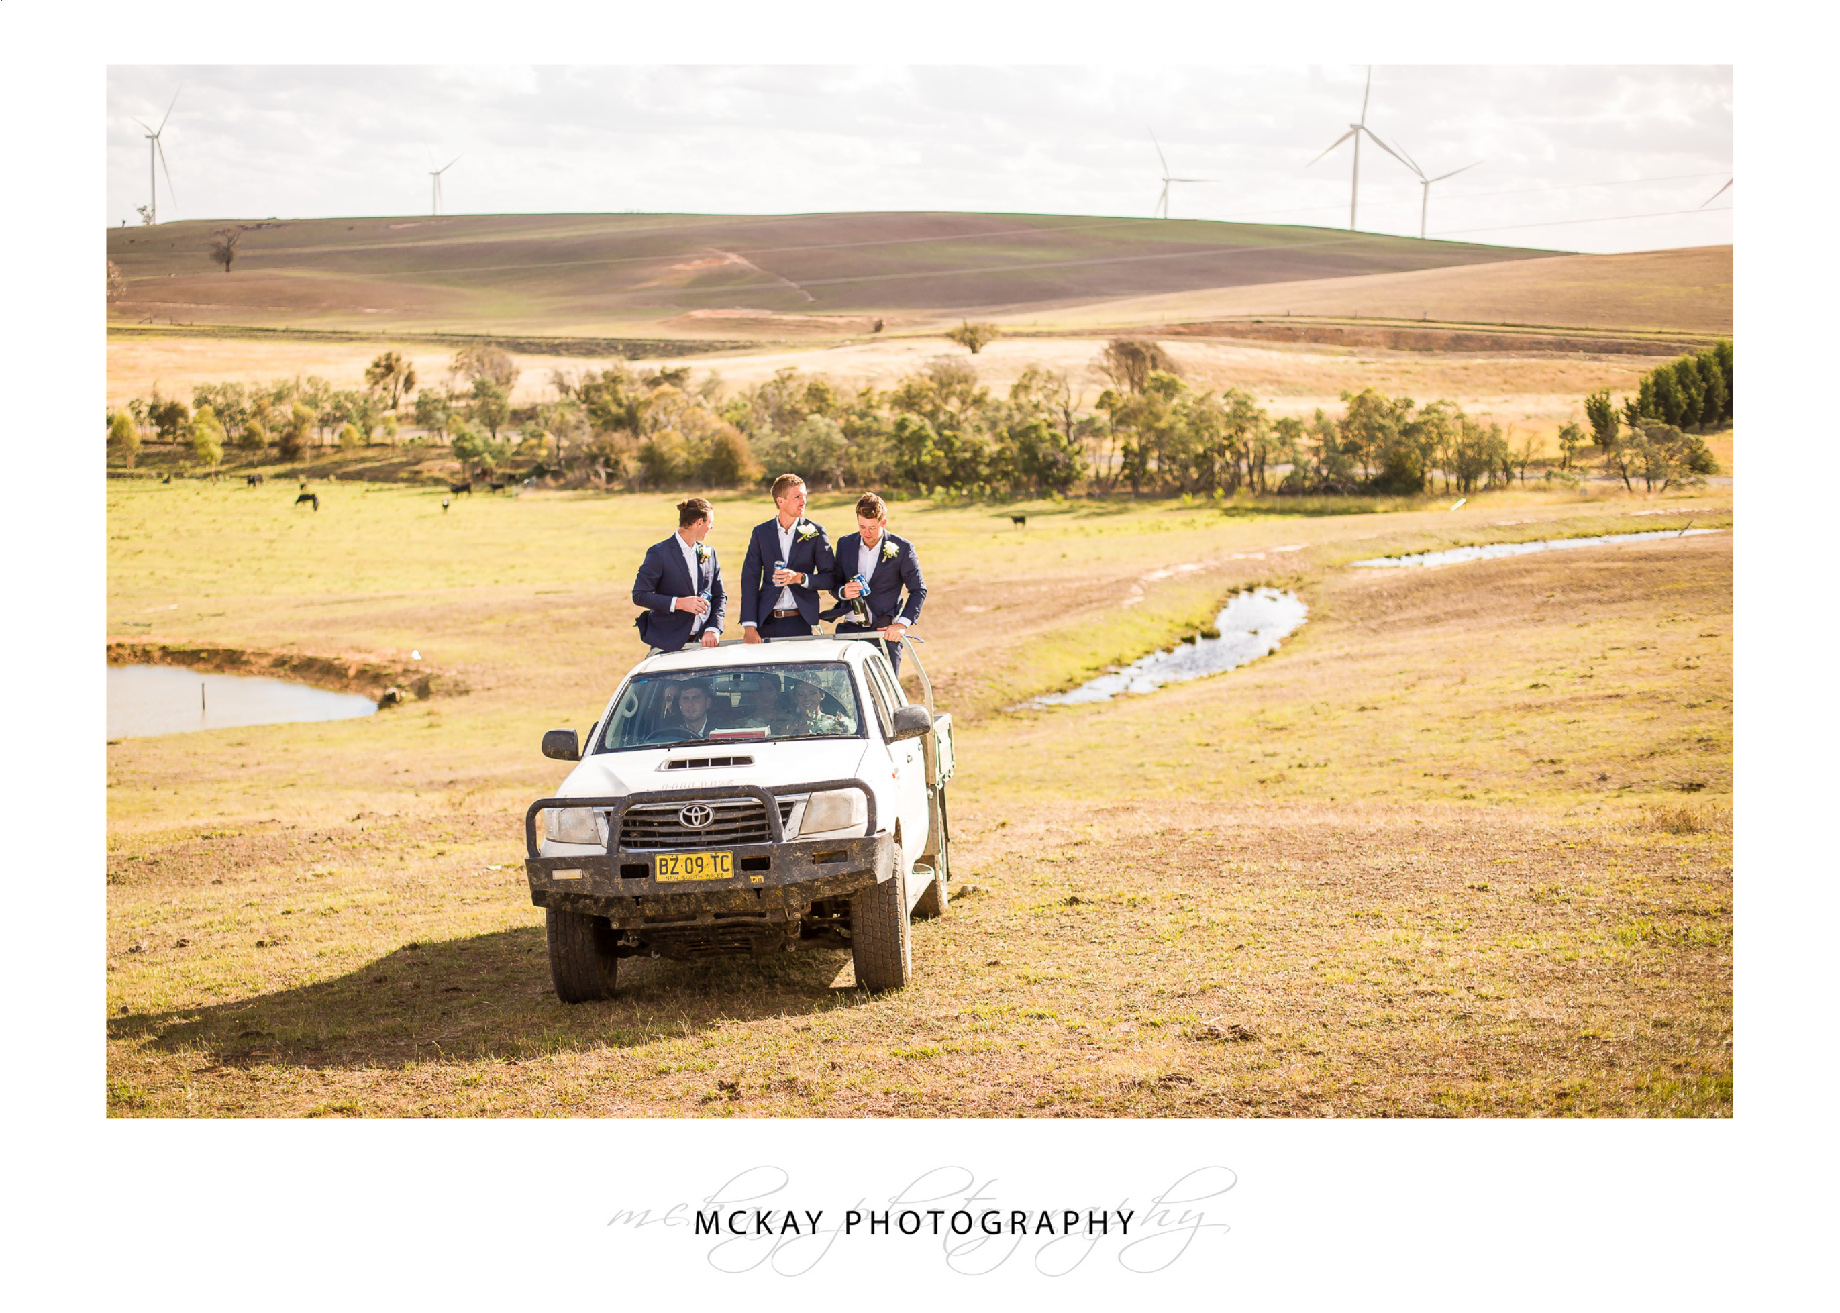 Boys in the back of the ute